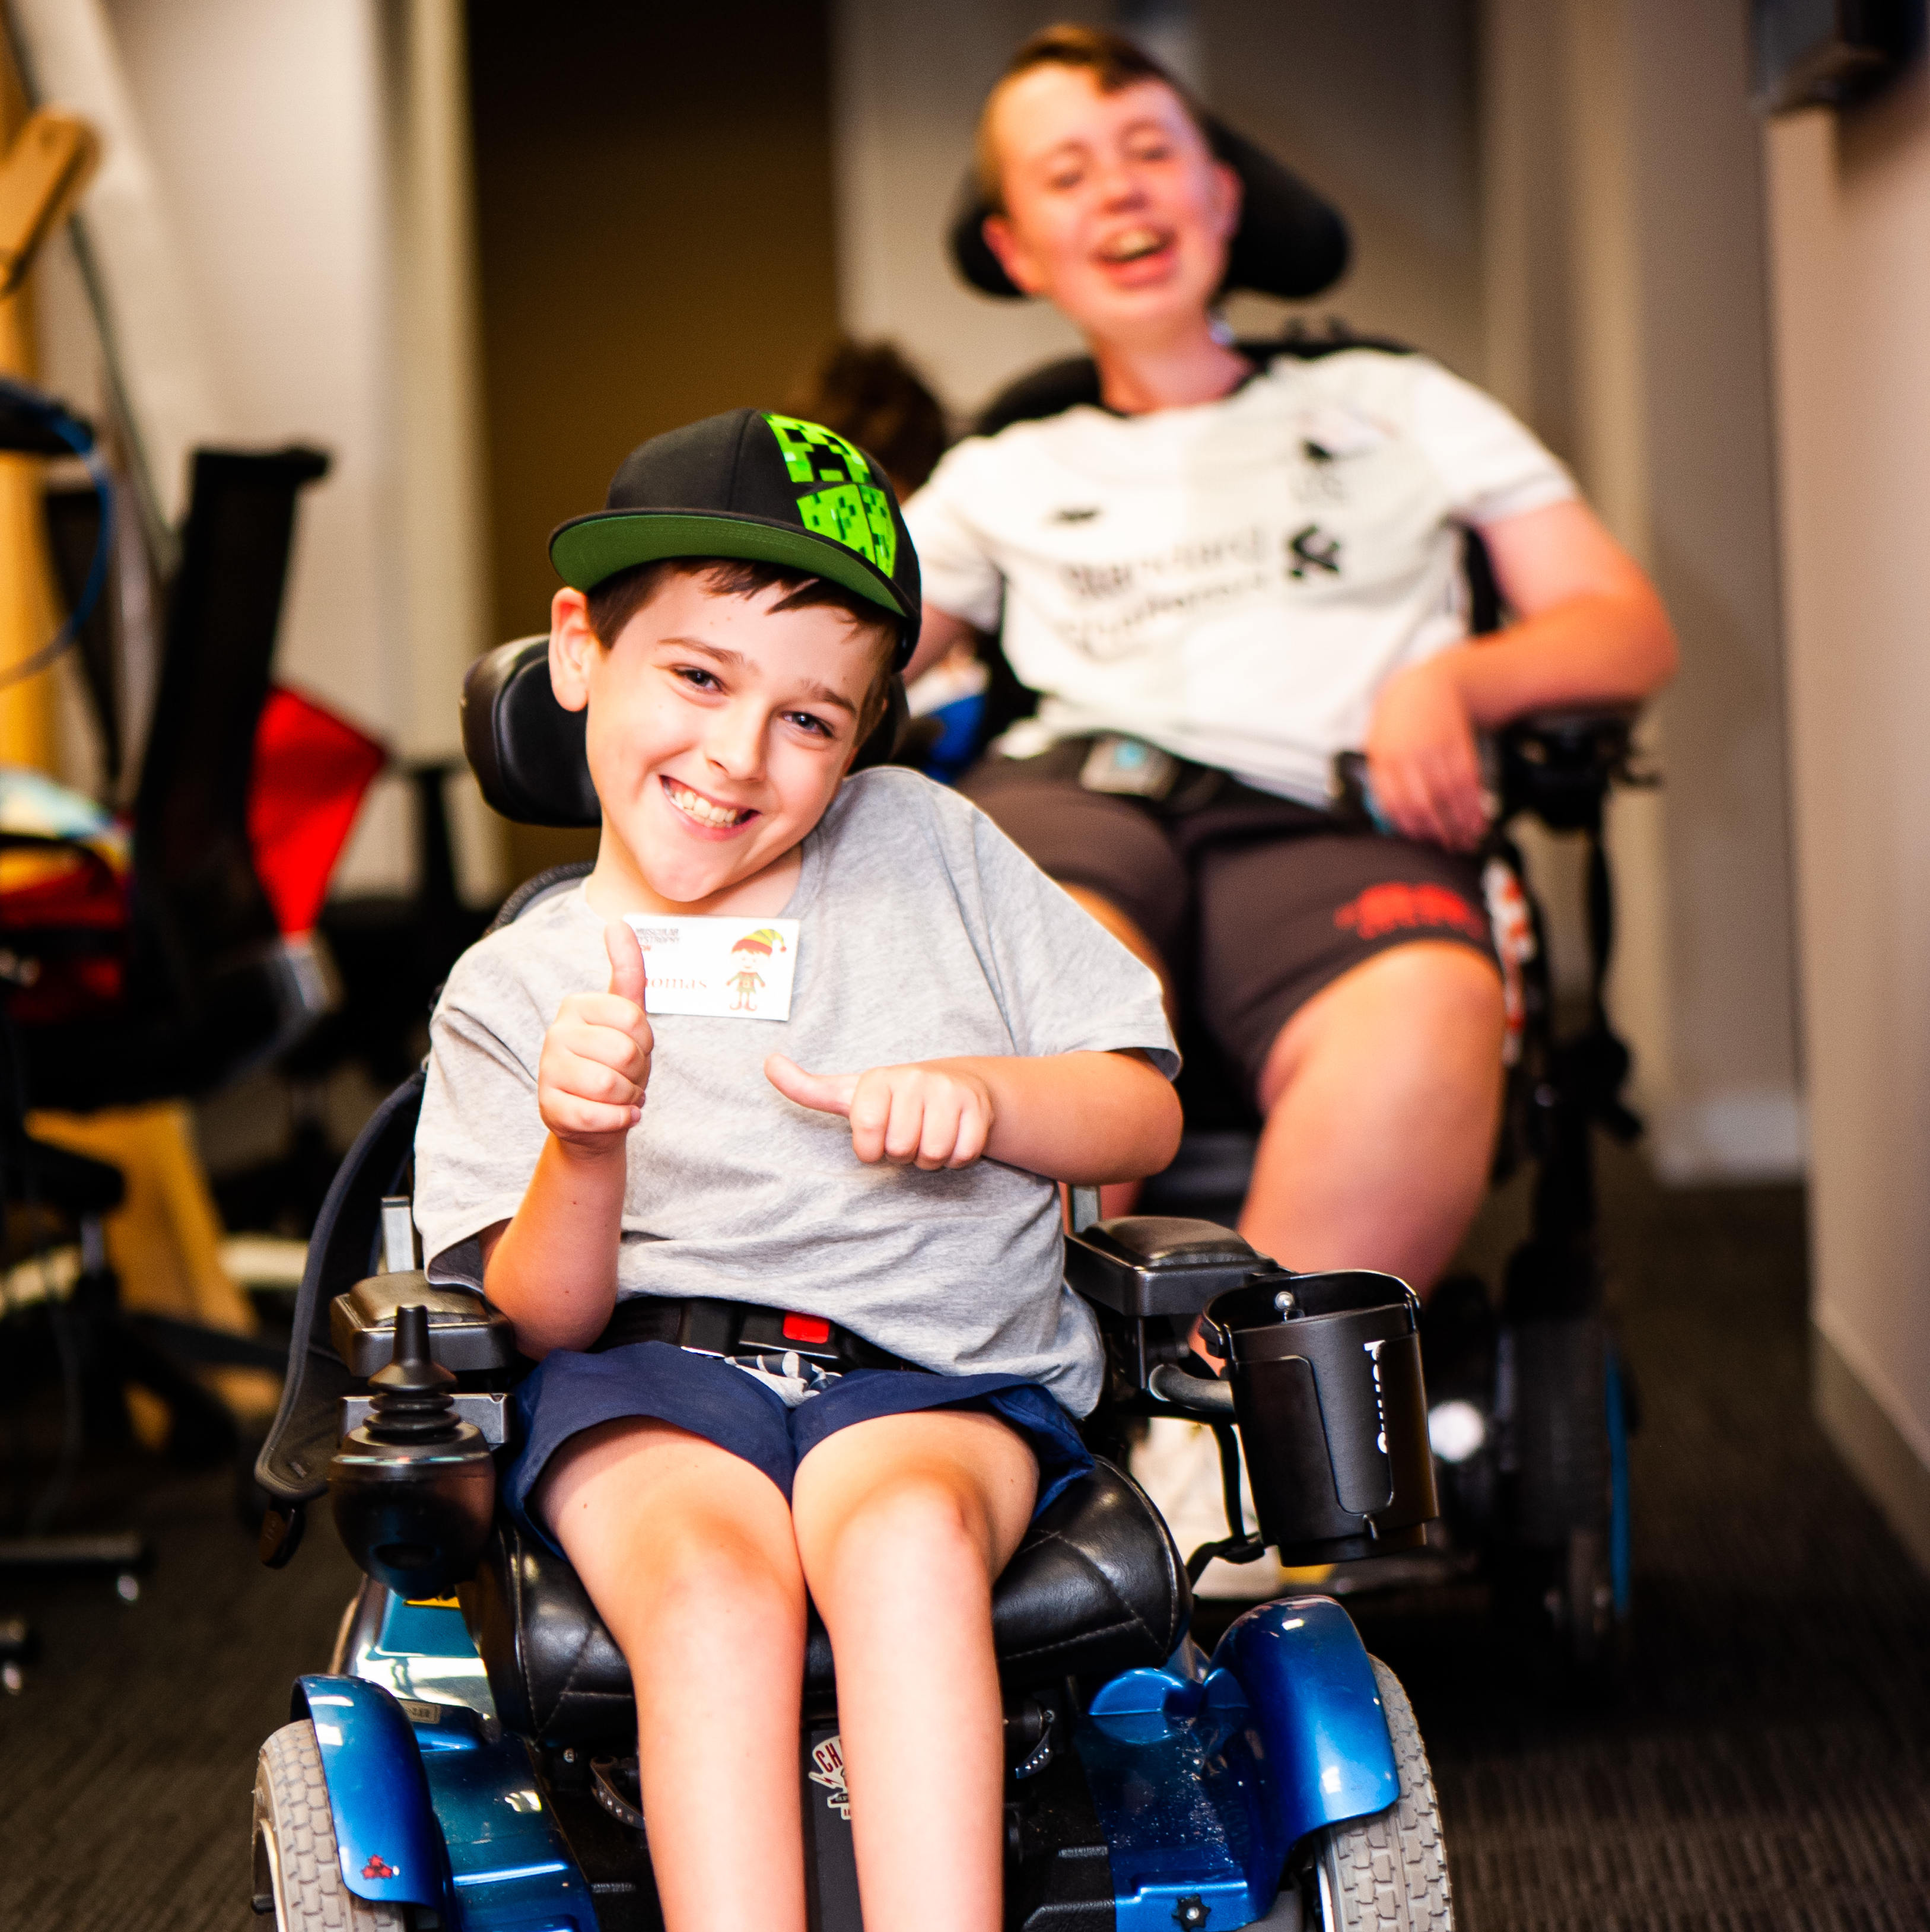 shows two boys having fun in their power wheelchairs